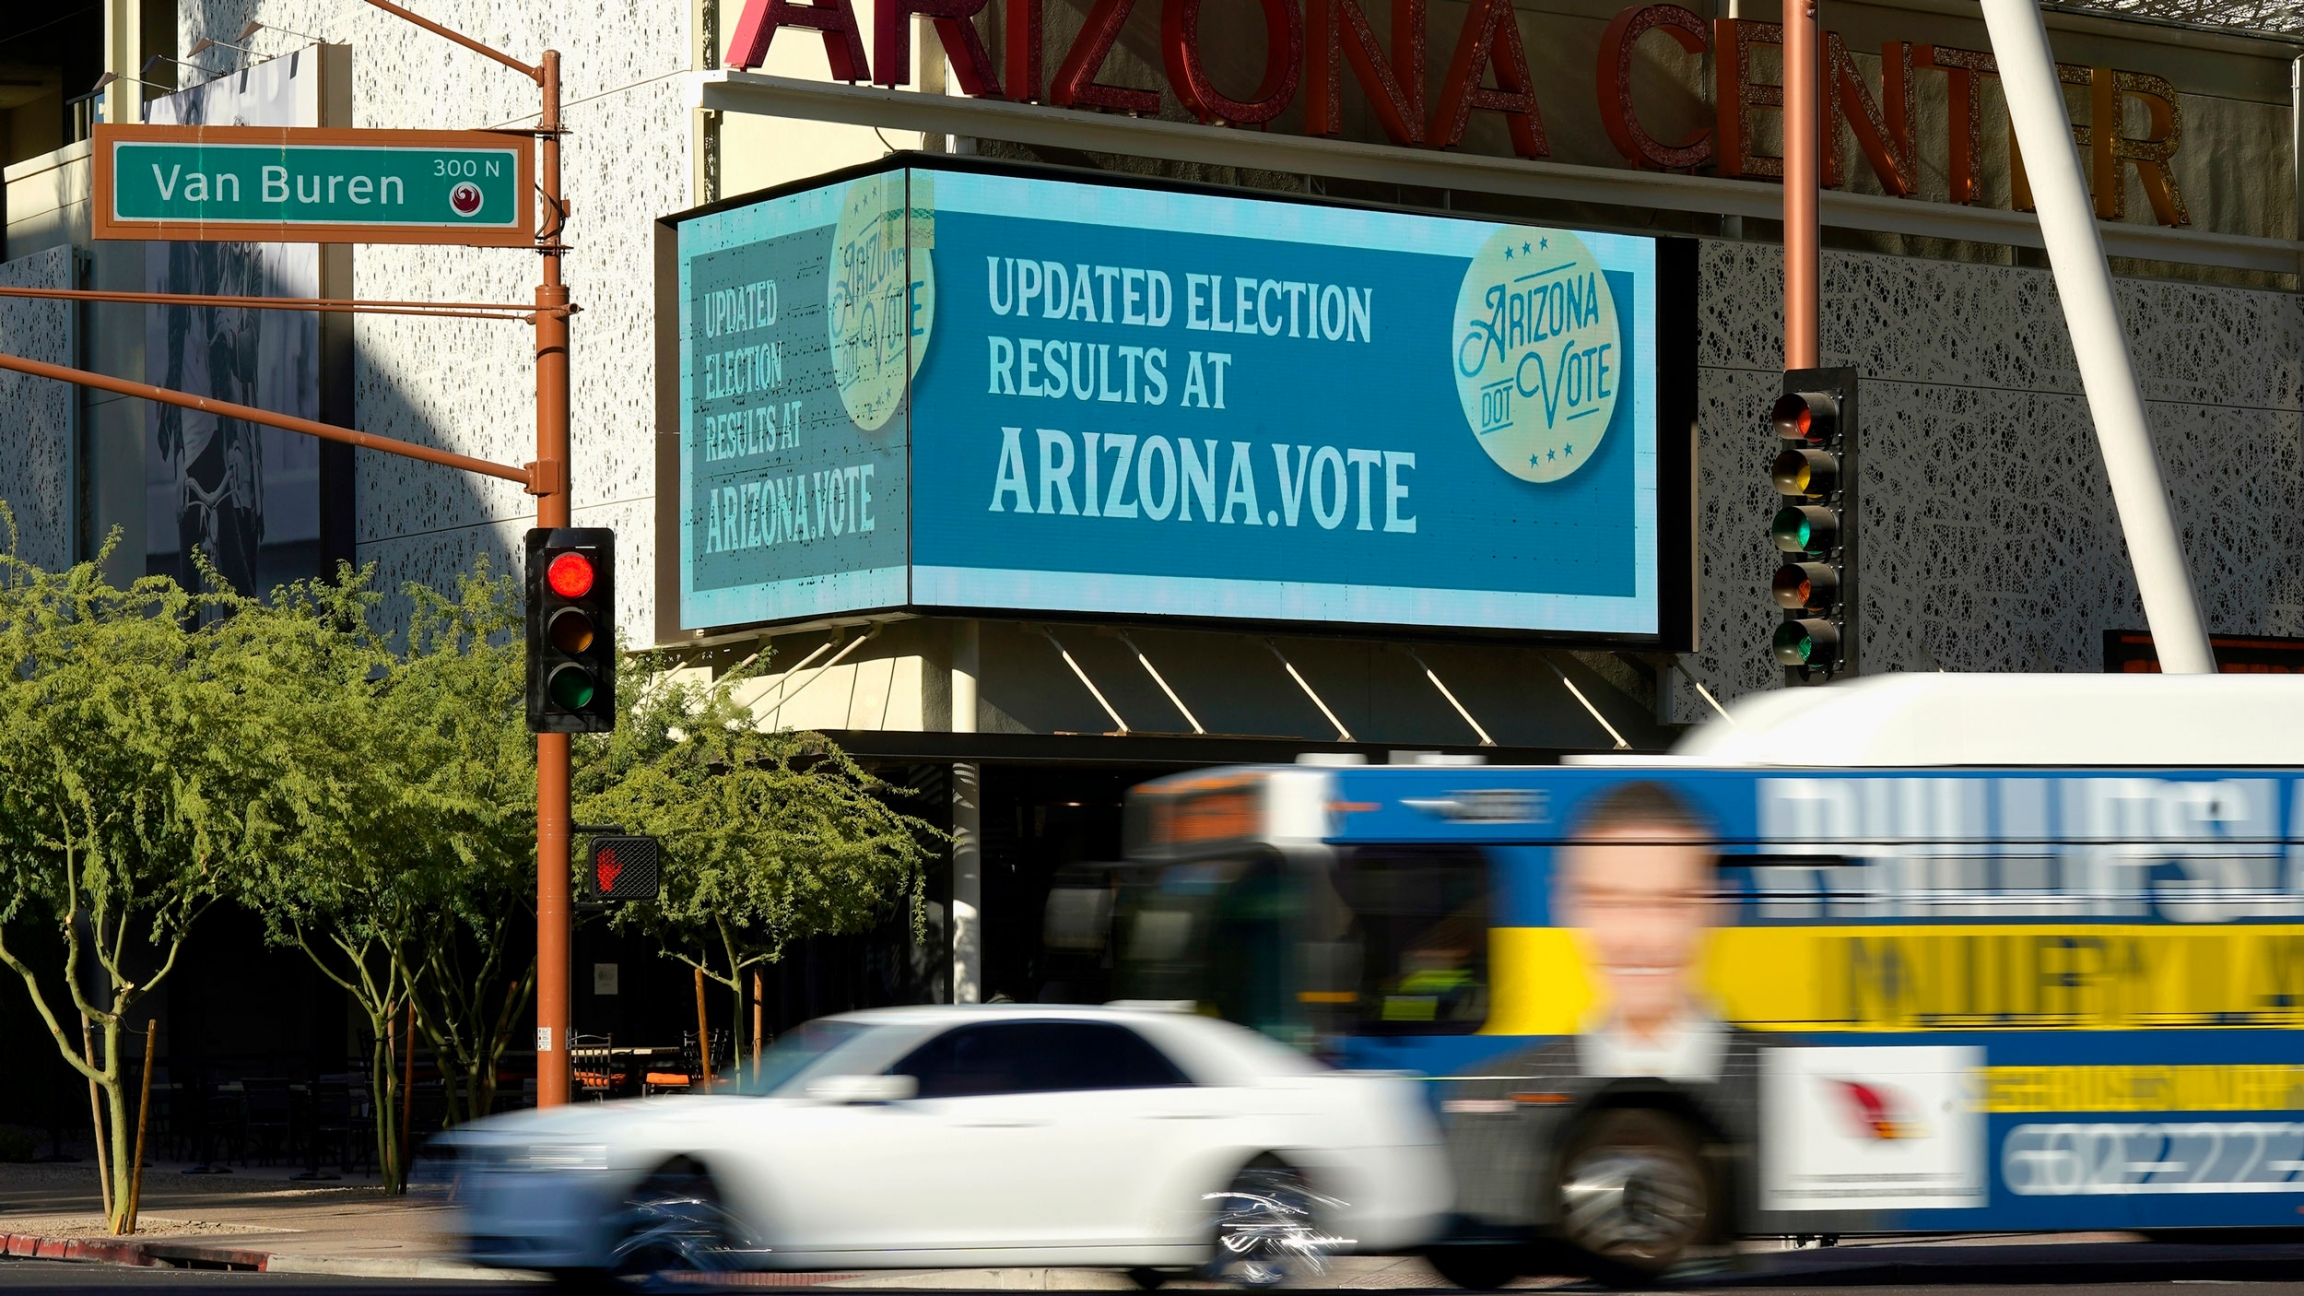 An electonic billboard is shown with information about the Arizona vote as vehicles pass by.